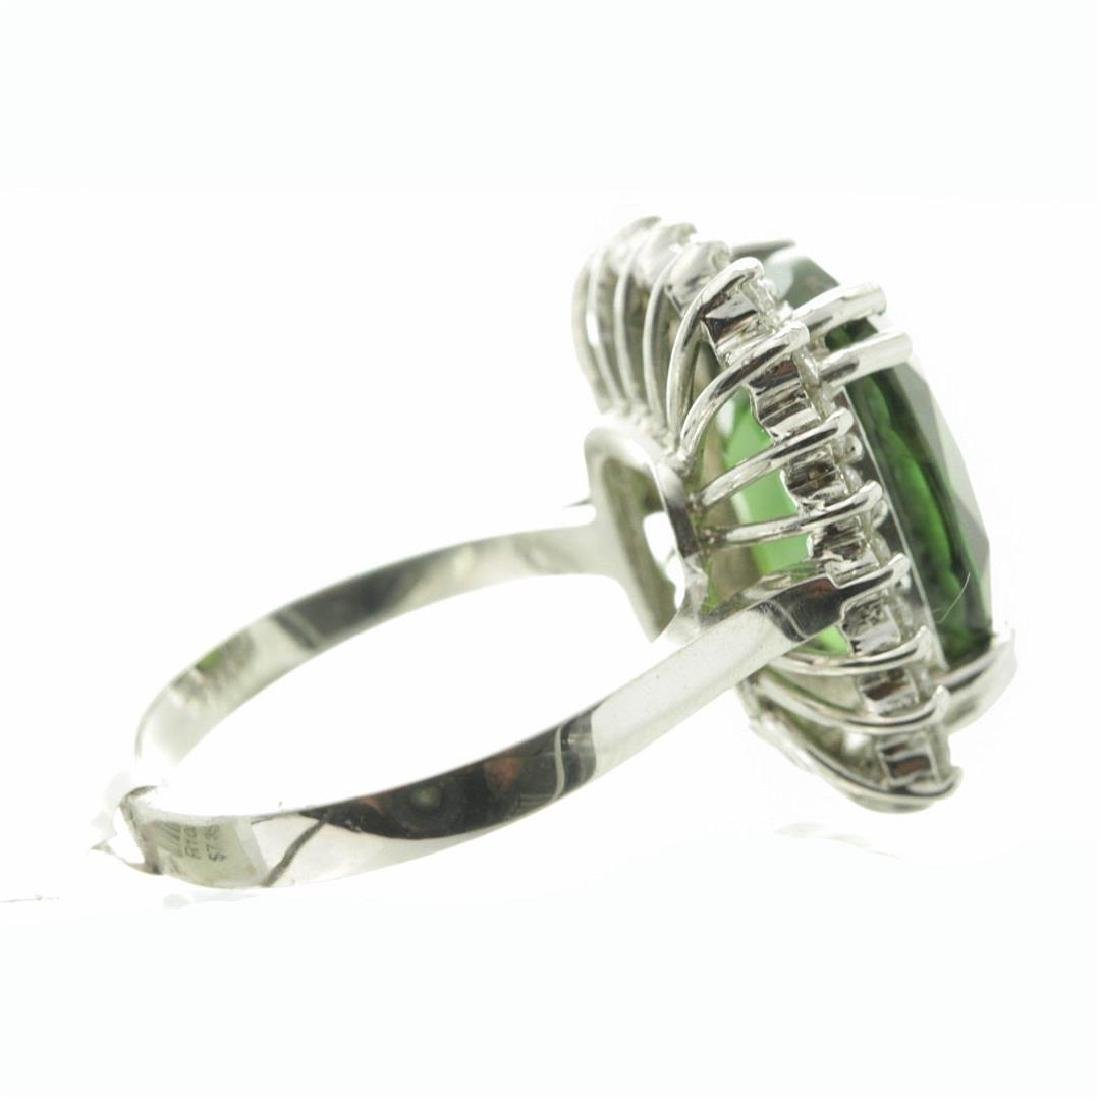 9.75 ctw Green Sapphire and Diamond Ring - 14KT White - 5